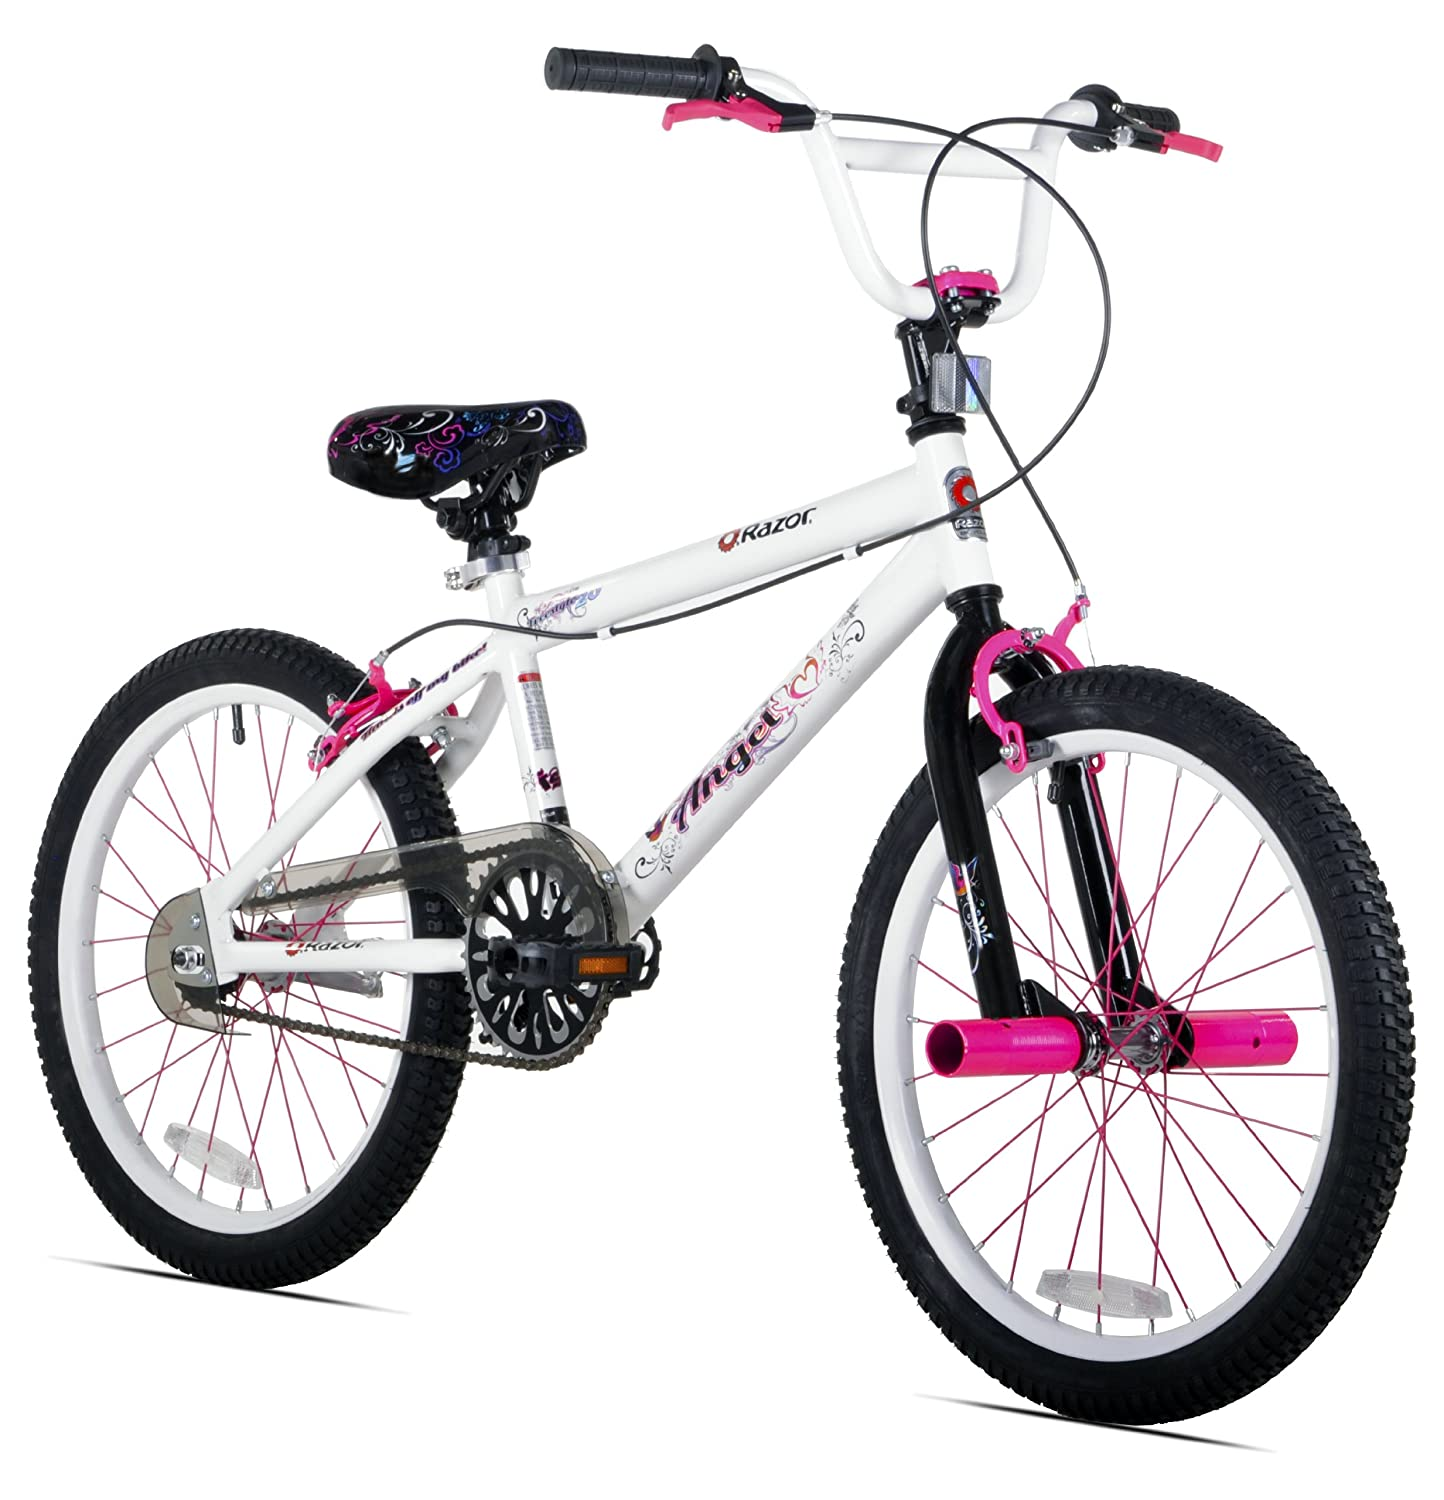 Bikes 20 Inch Boys Reviews Bike White Inch